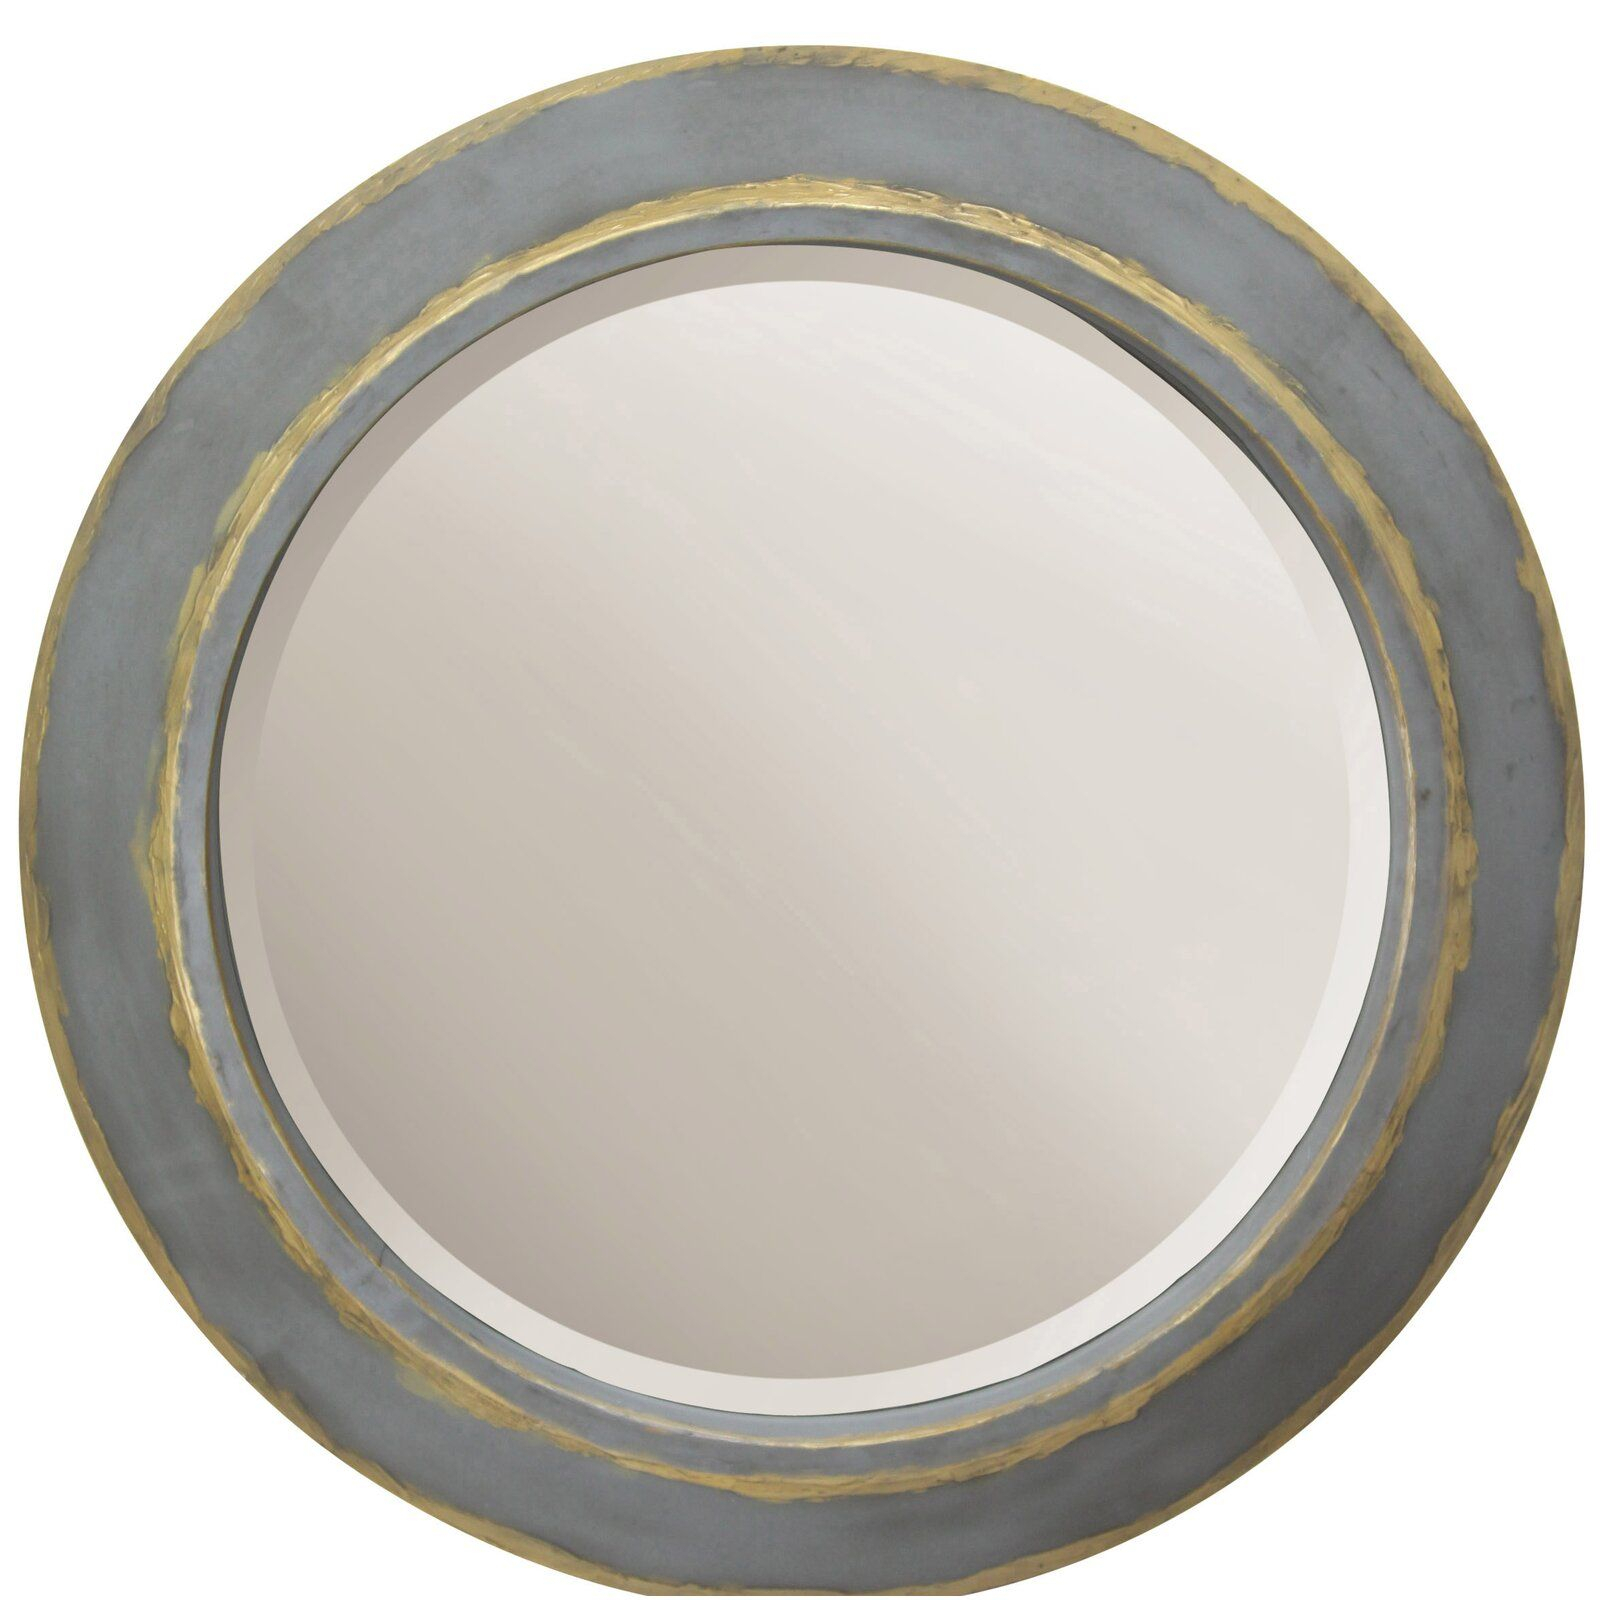 Peete Glass Beveled Accent Mirror In 2019 | Mirror | Mirror With Charters Towers Accent Mirrors (Image 15 of 20)